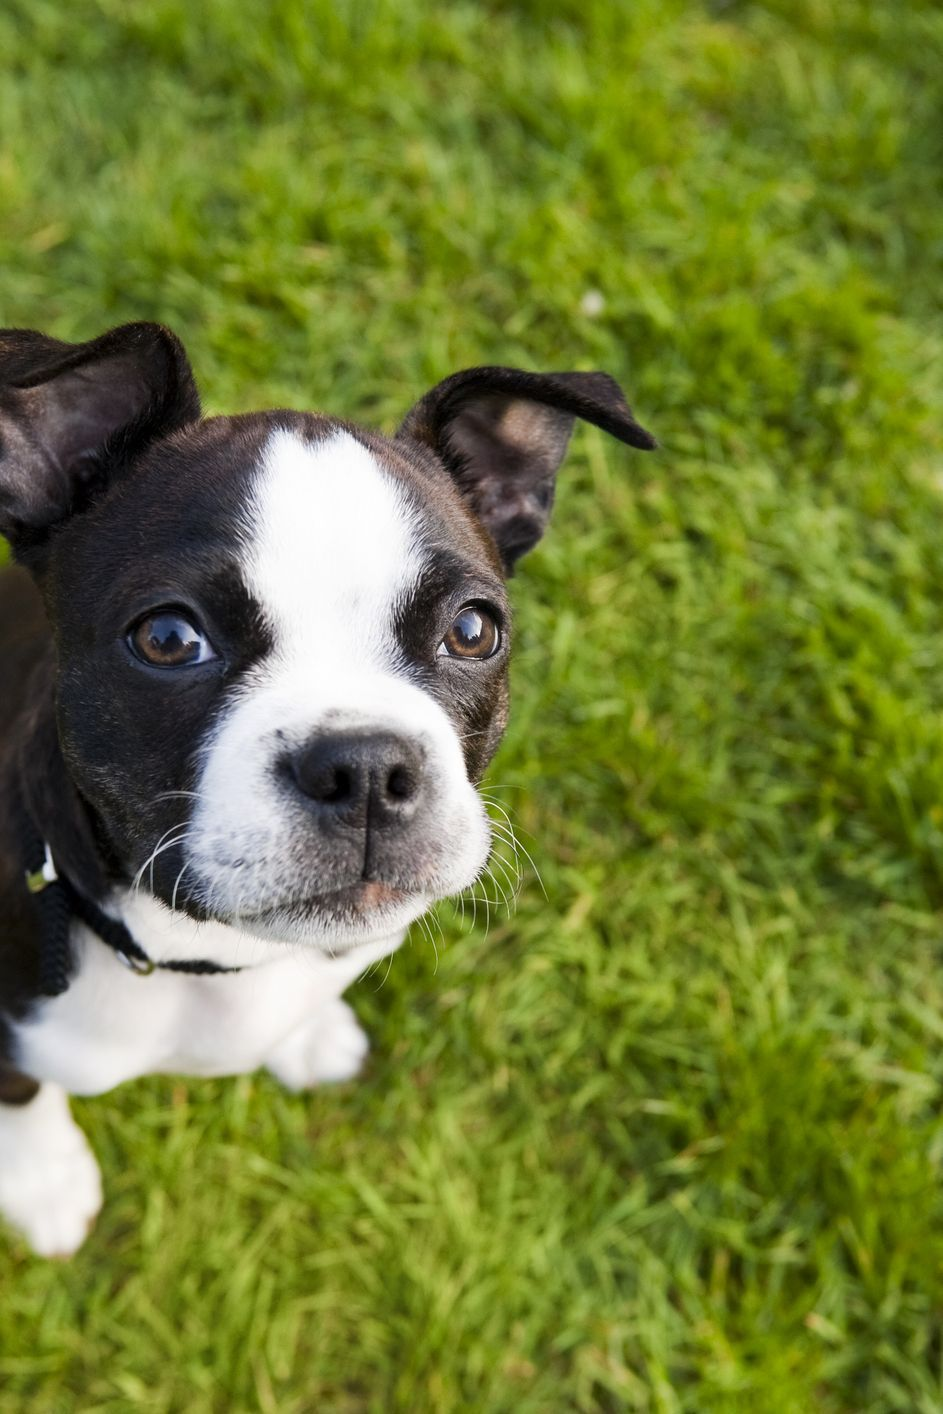 Just 43 Pictures Of Sweet And Fluffy Small Dog Breeds You Ll Want To Snuggle Right Away In 2020 Dog Breeds Terrier Boston Terrier